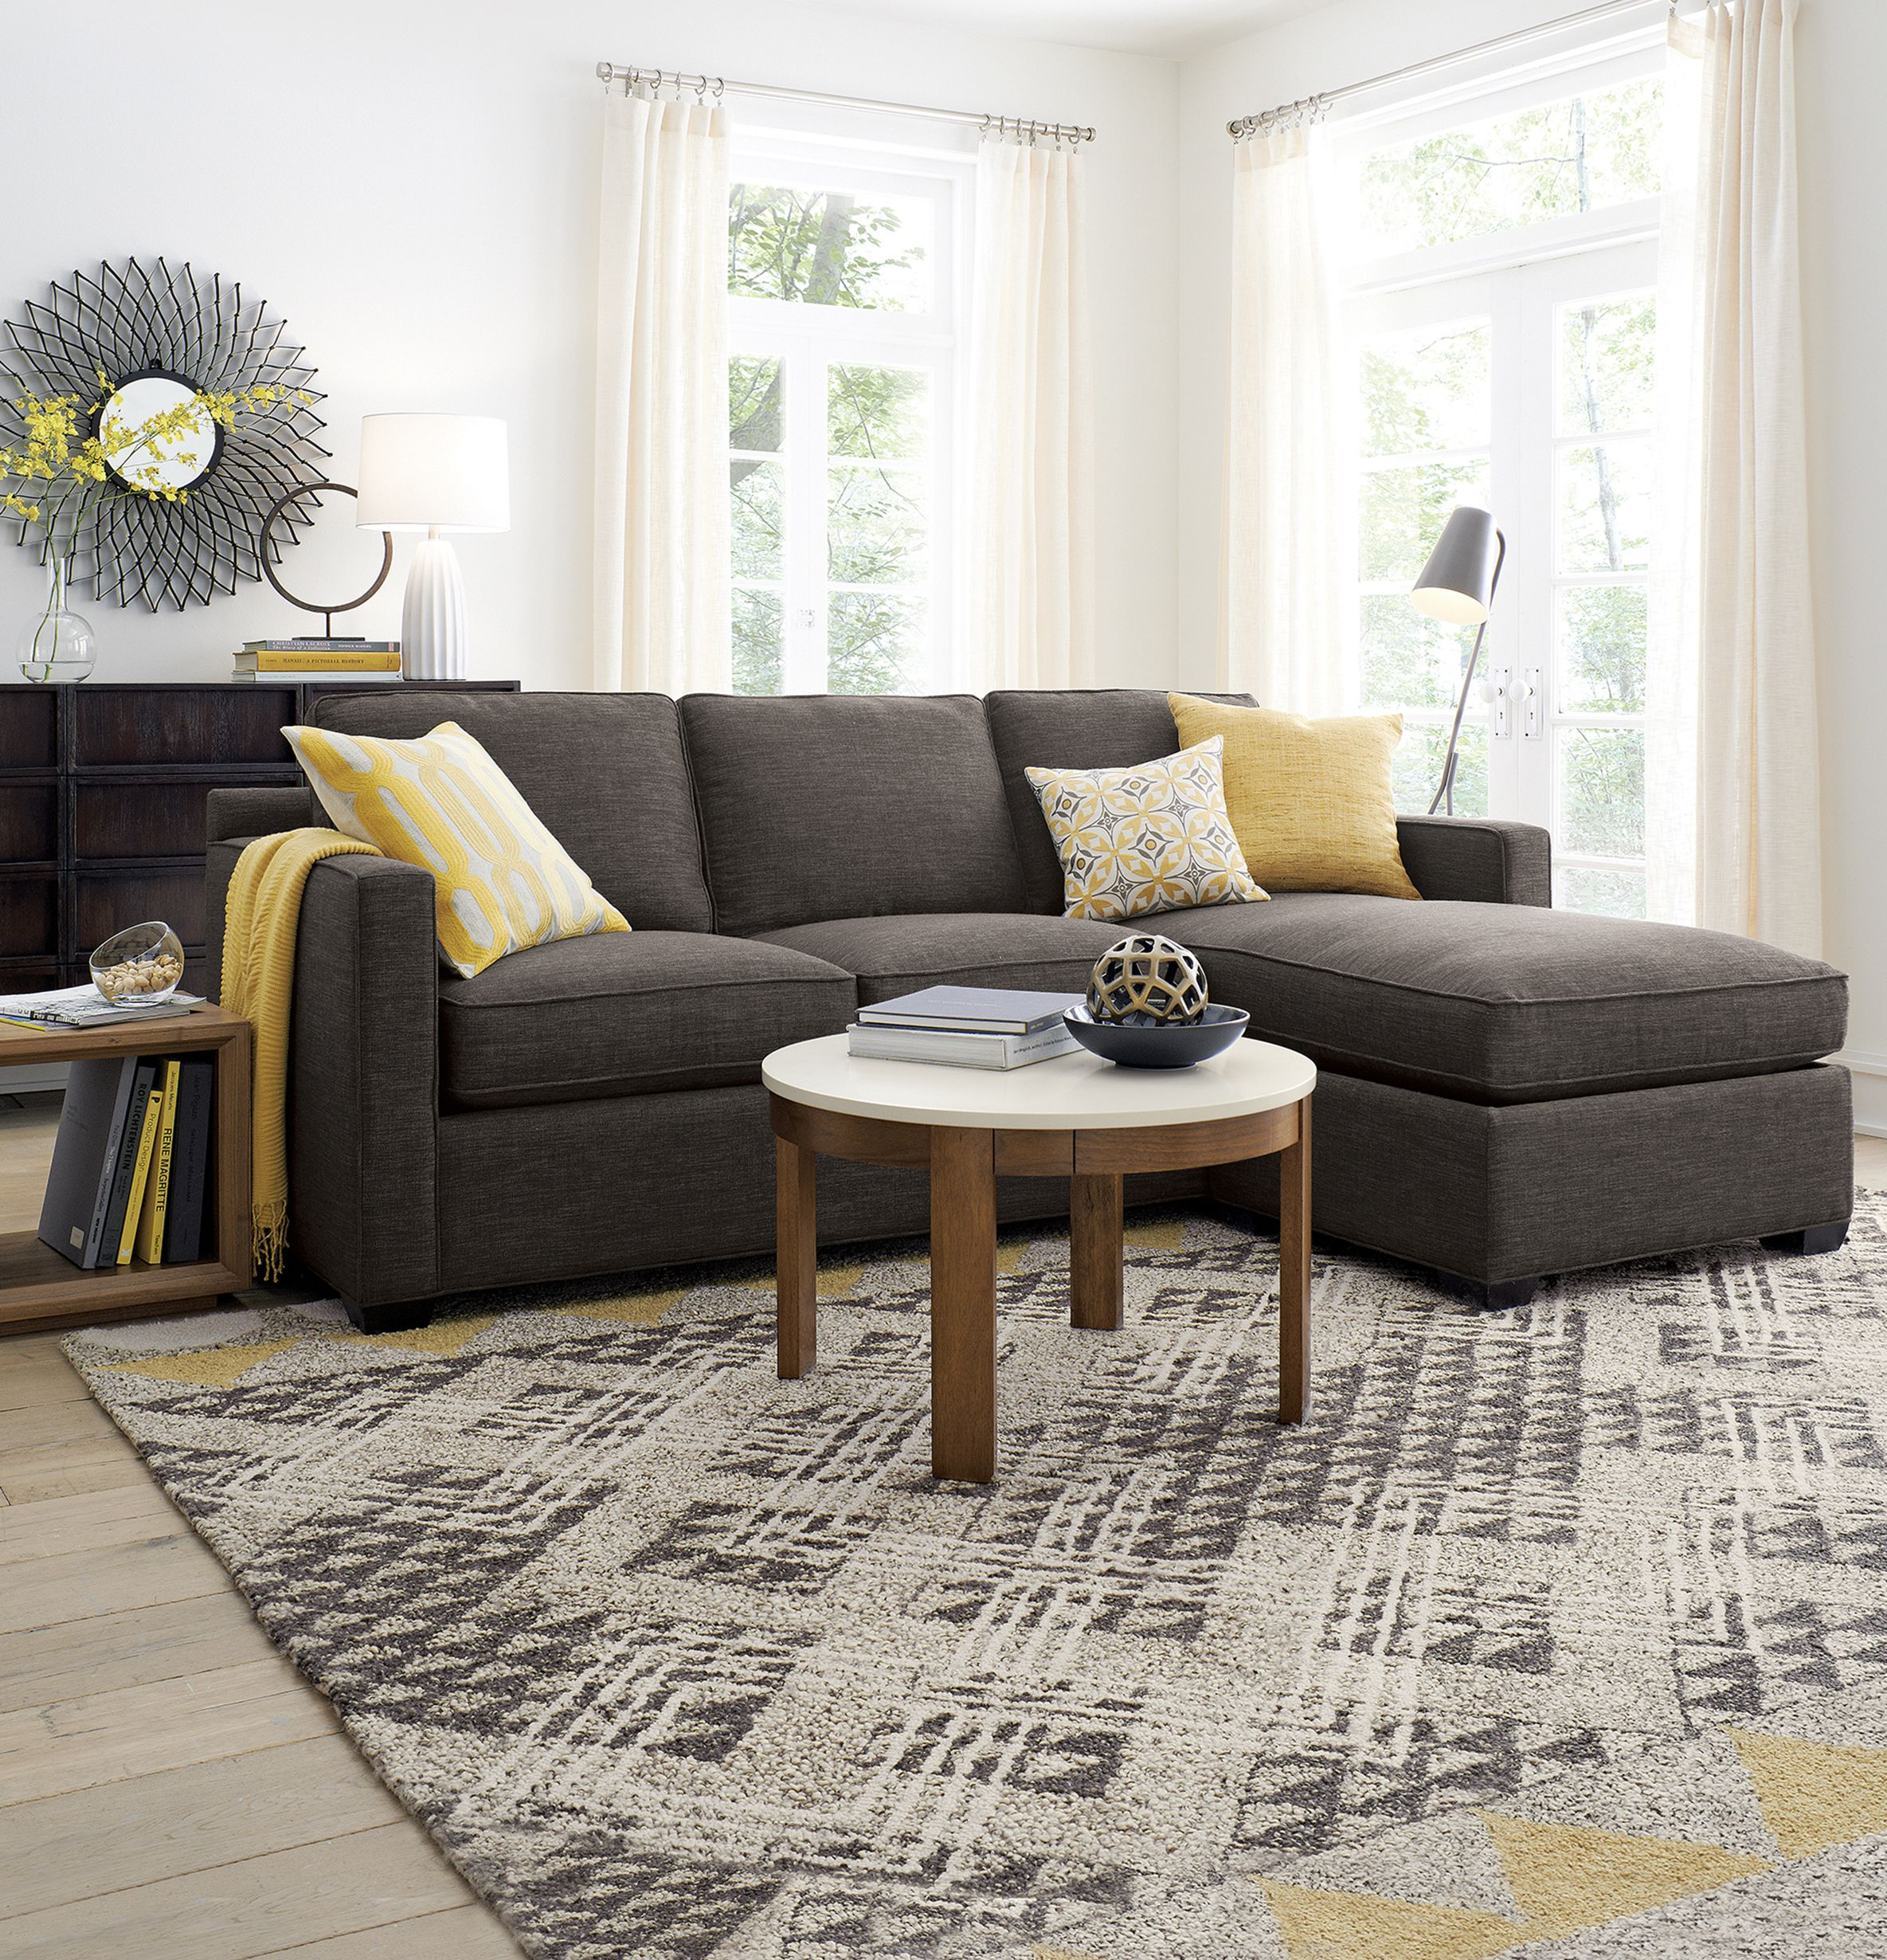 Sectional Sofas At Living Spaces: Davis Is Designed To Sit Big In Small Spaces At An